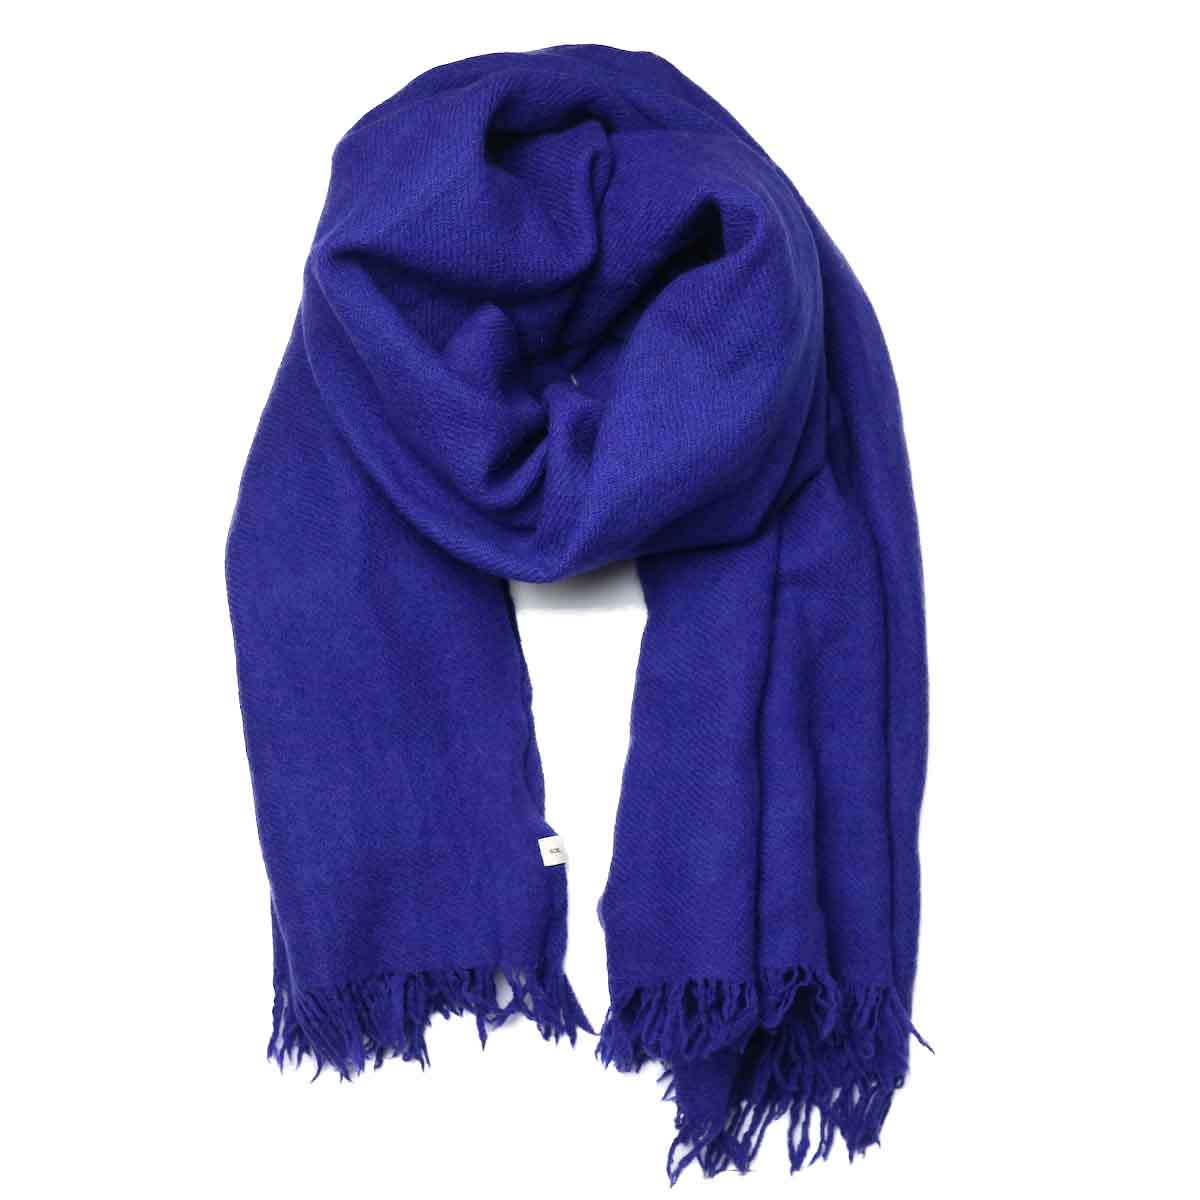 SOIL / MELANGE BOILED WOOL PLAIN STOLE (Purple)